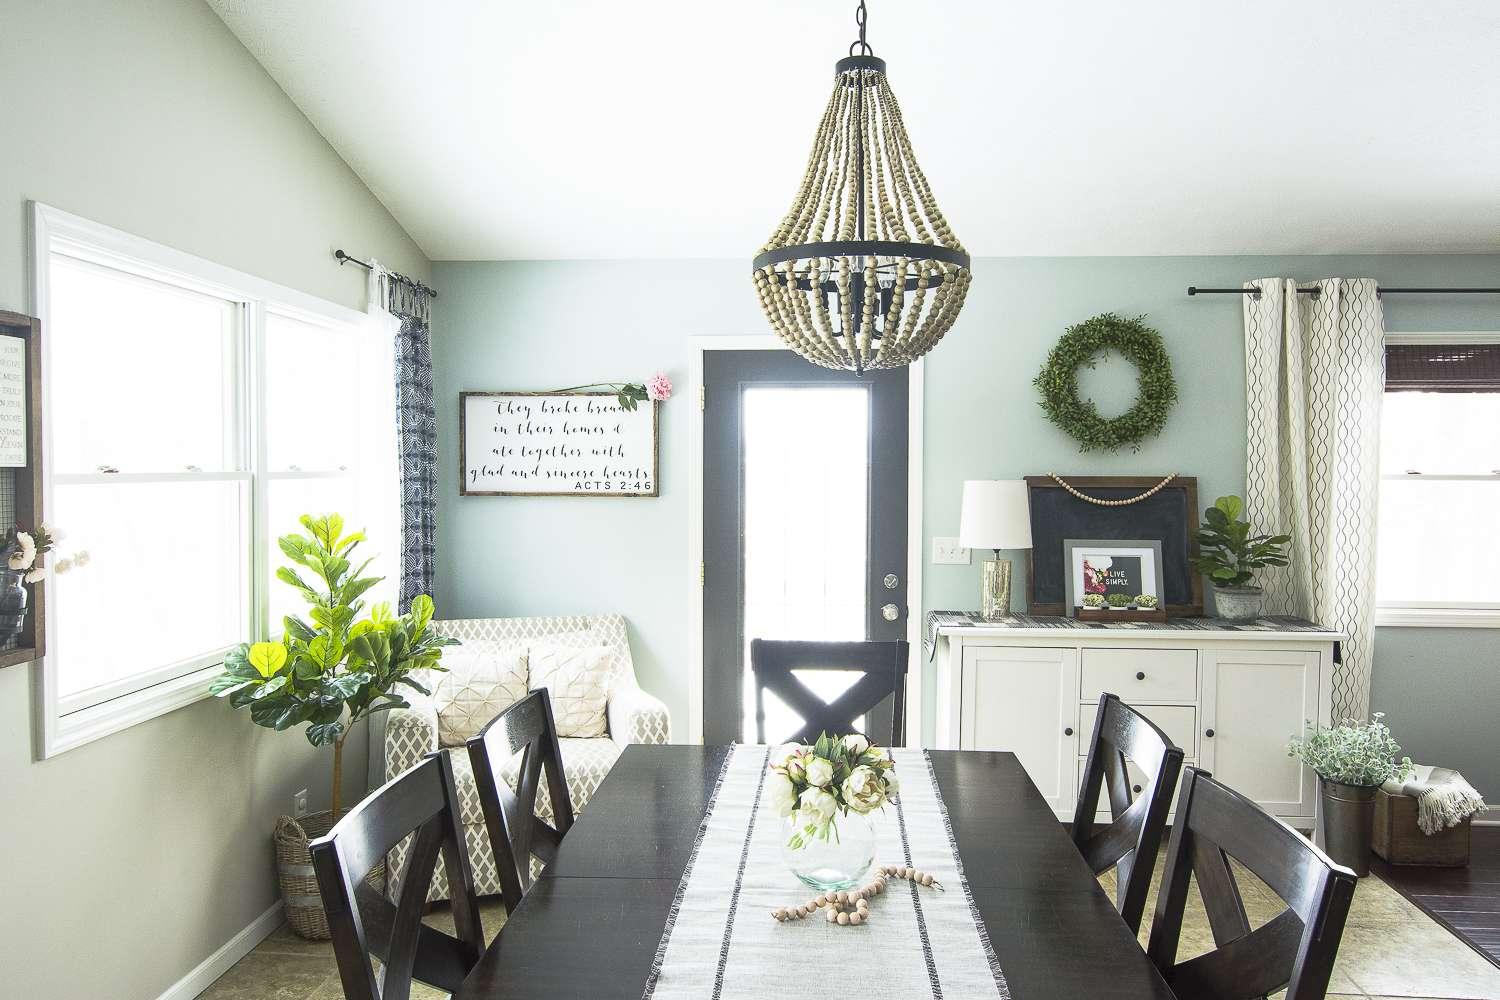 If you're looking for spring home decor ideas then I have some quick and simple ways to incorporate spring into your every day decor. Come tour my home for spring!